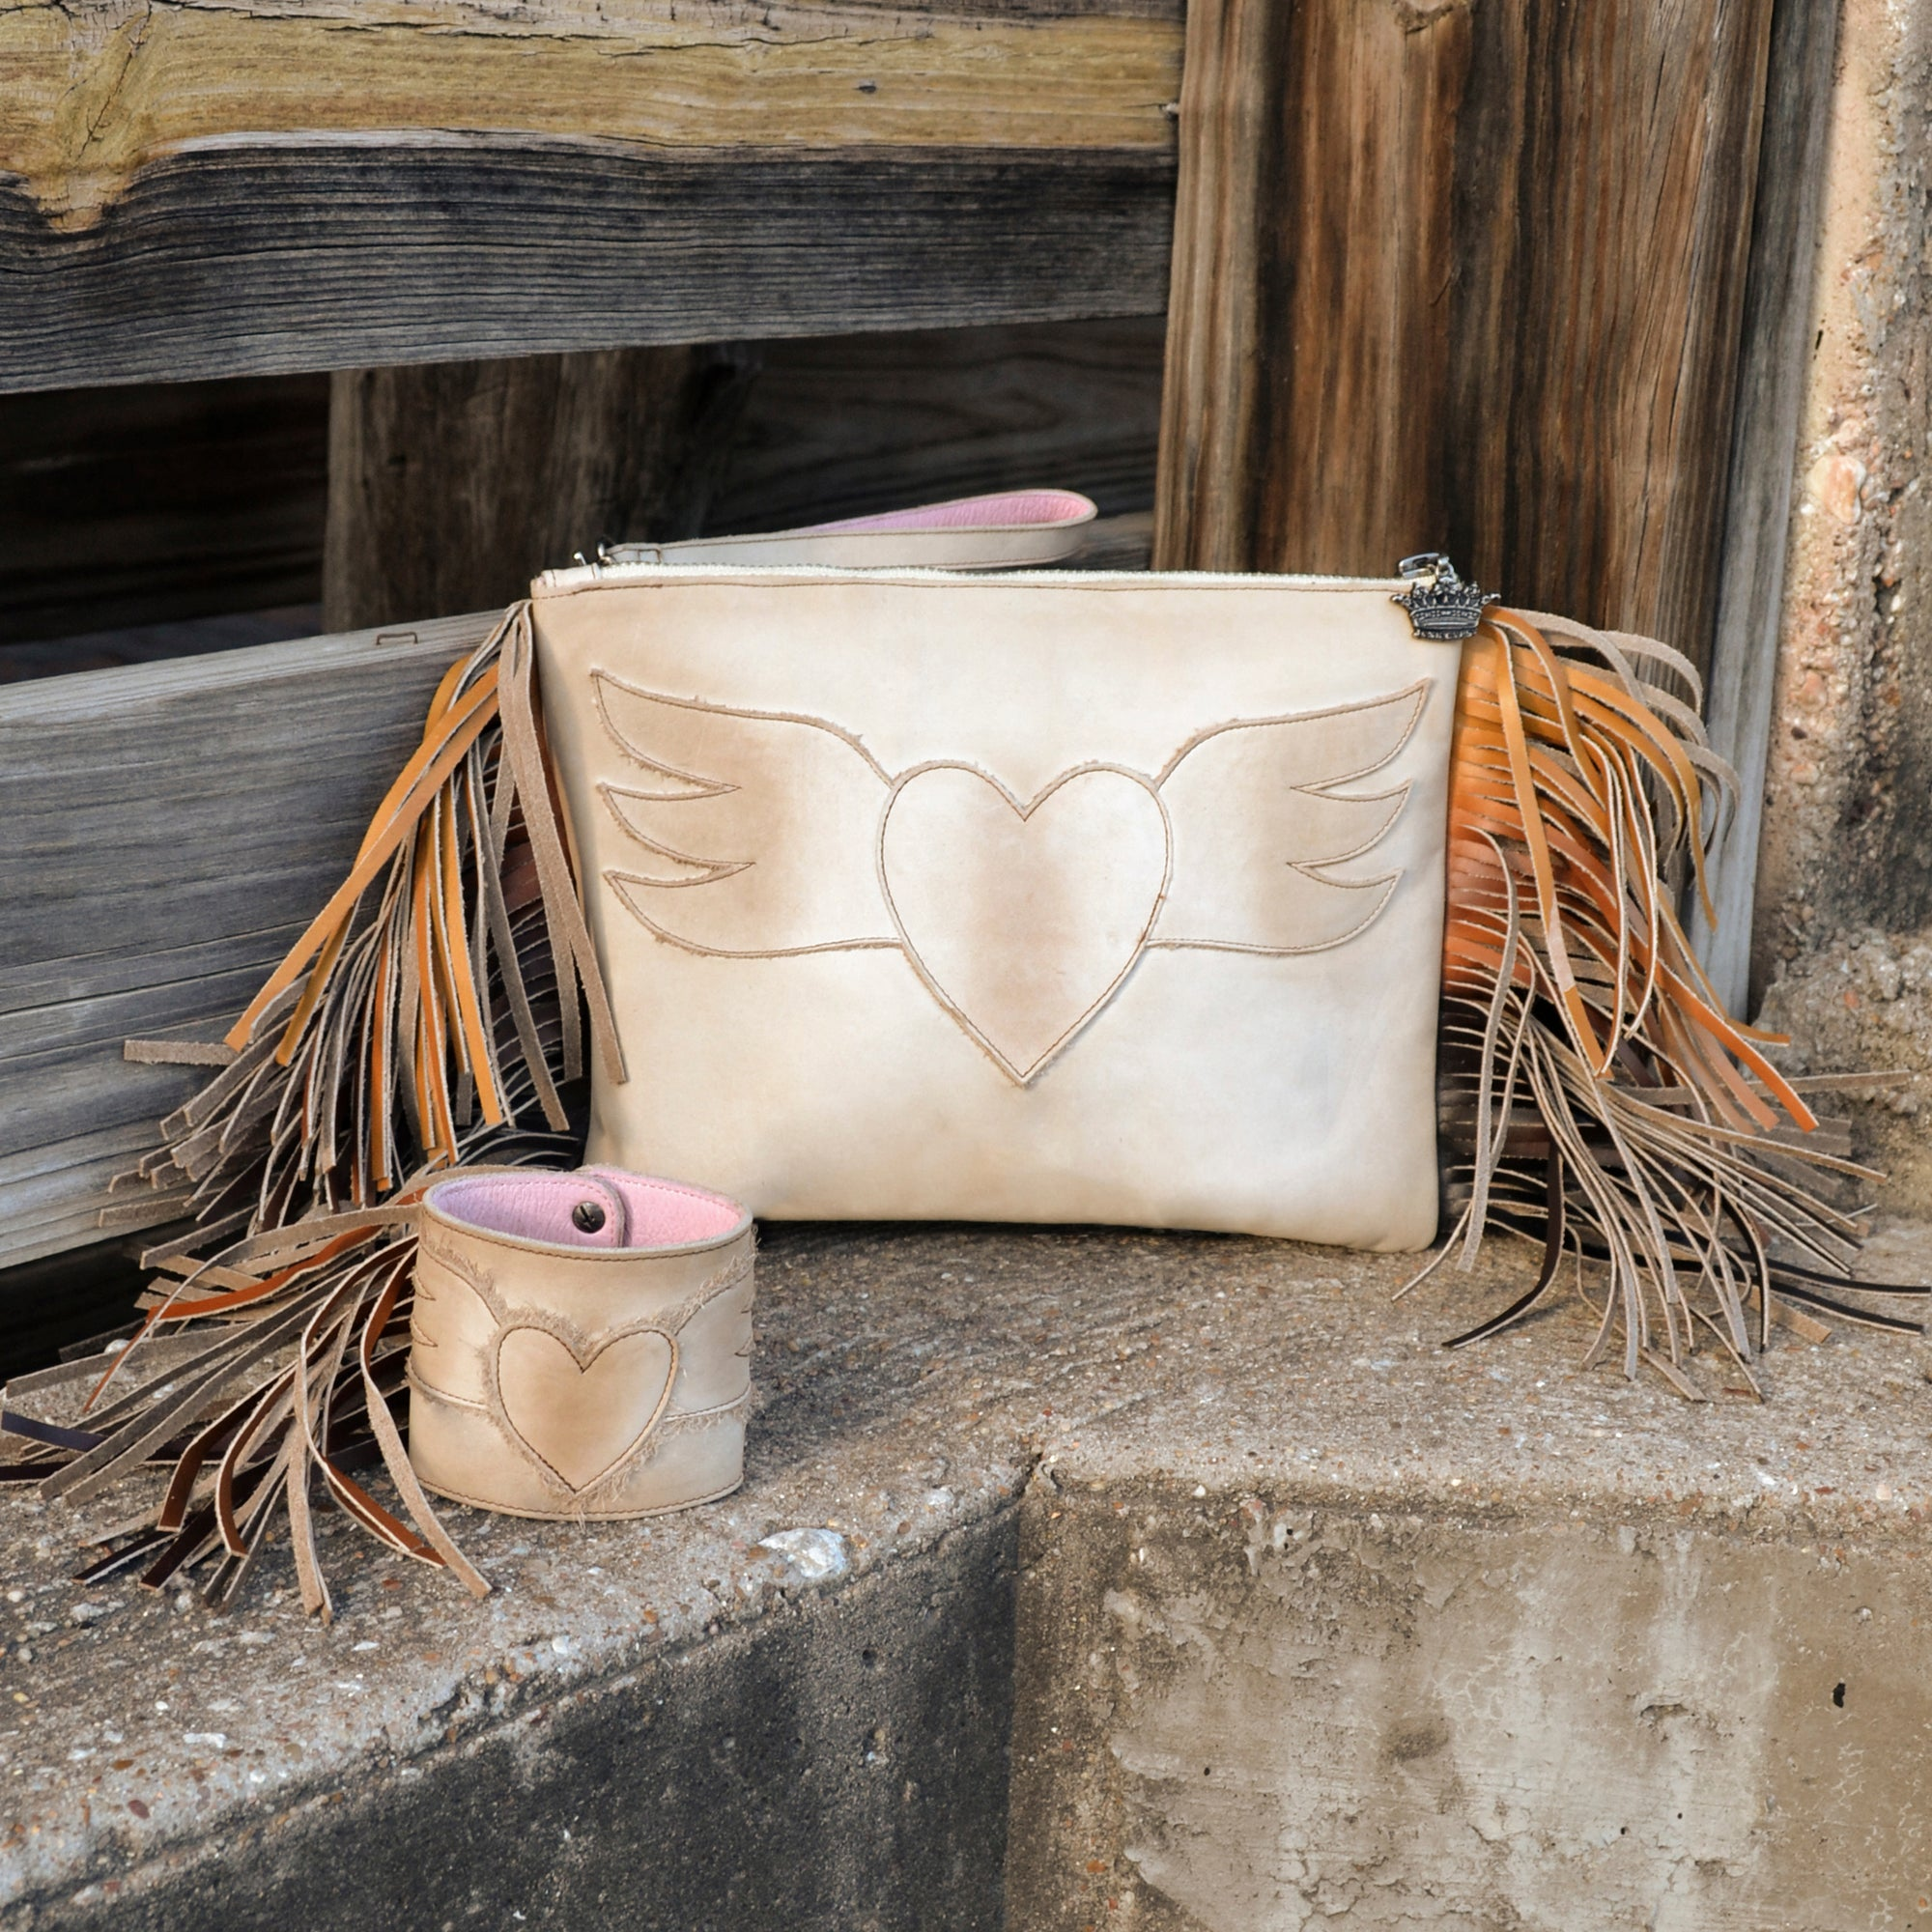 Junk Gypsy Spirit Animal Wristlet Bags by Lane Handmade Boots